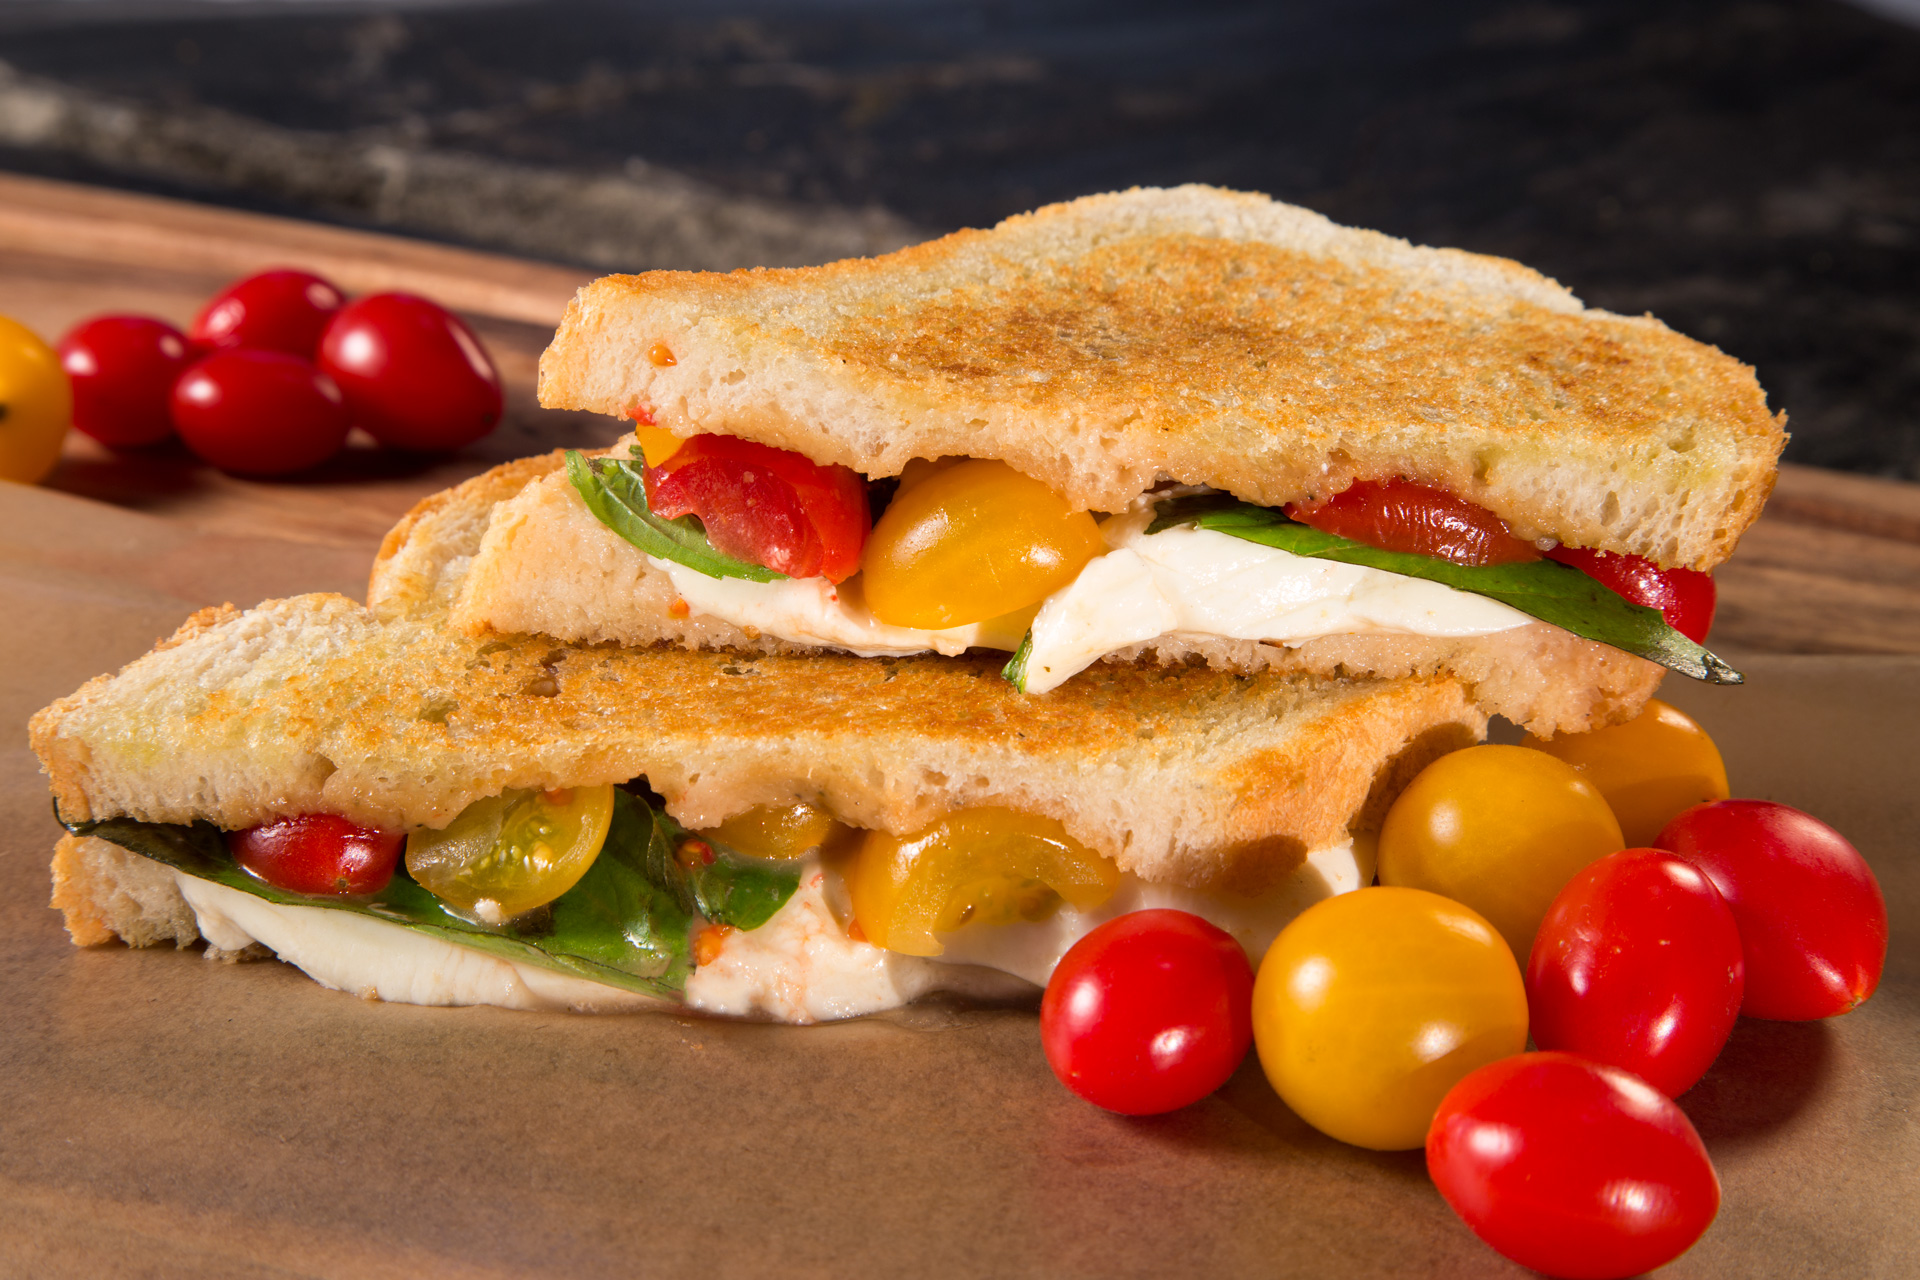 It's a Caprese Grilled Cheese! Here's a summertime sandwich that will surprise and delight your family and friends with a mix of comfort food and special occasion treatment!